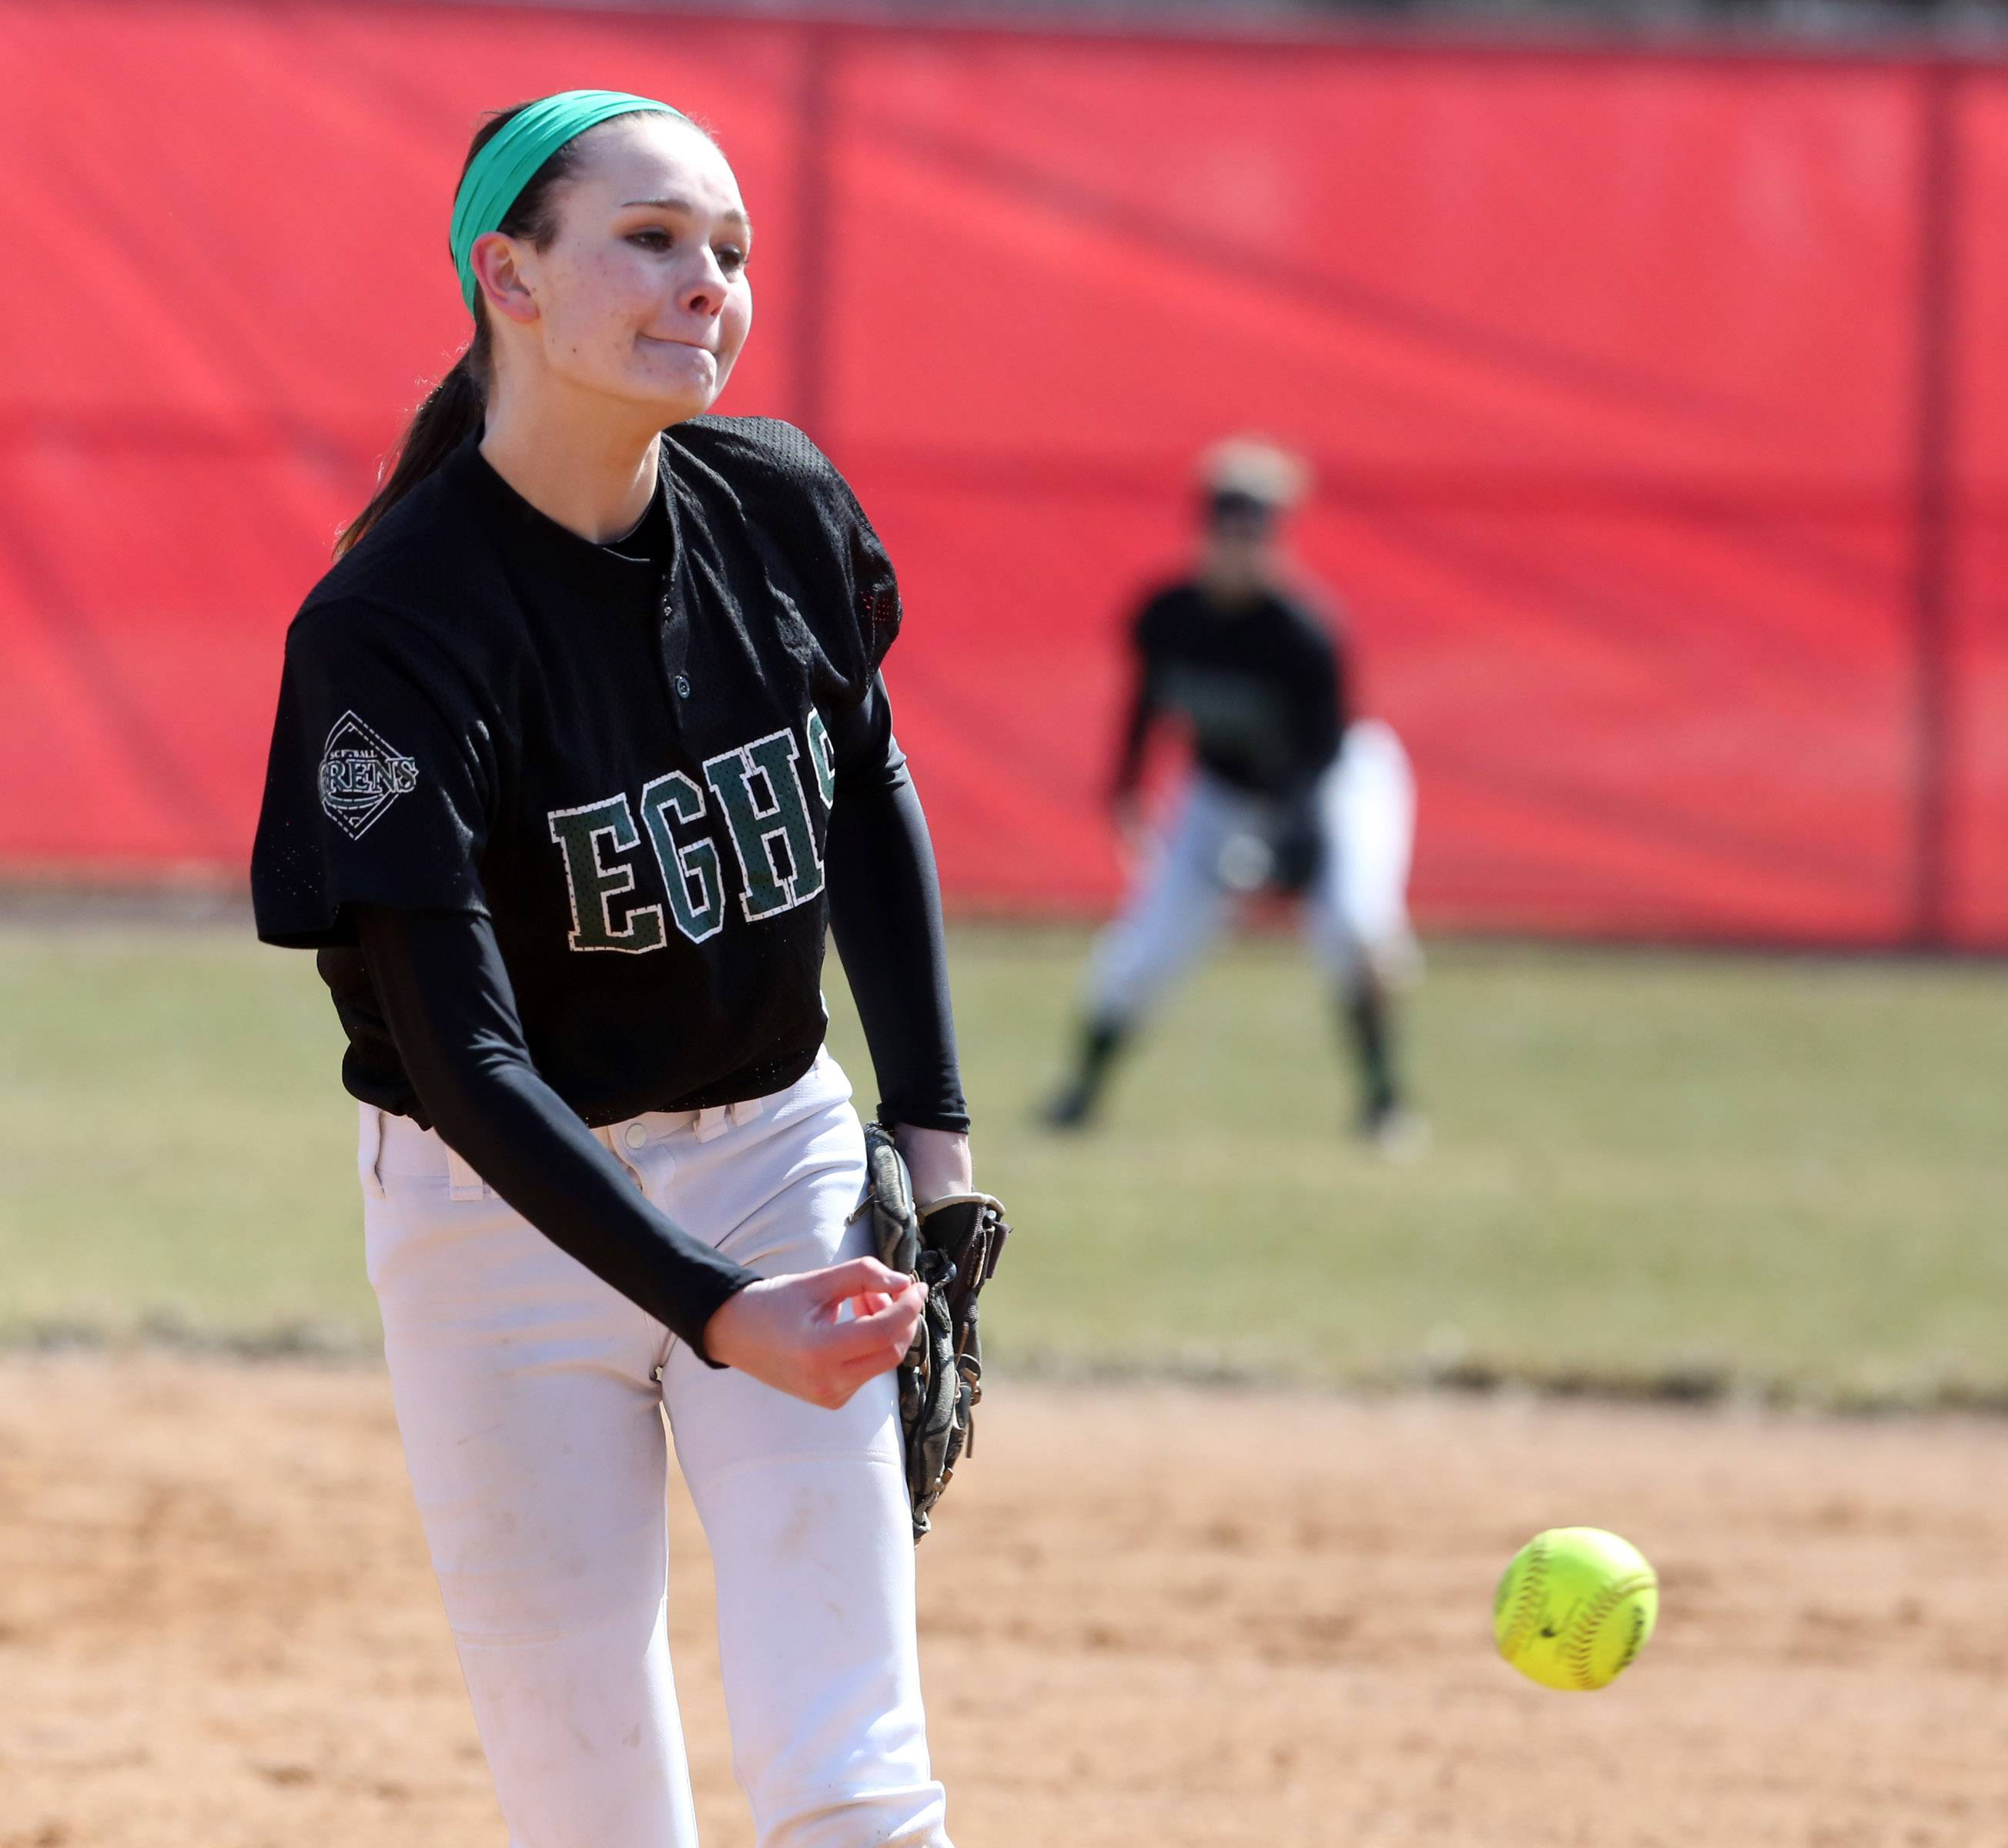 Elk Grove pitcher Megan Eul facing Mundelein at the Fields of Dreams on Saturday in Barrington